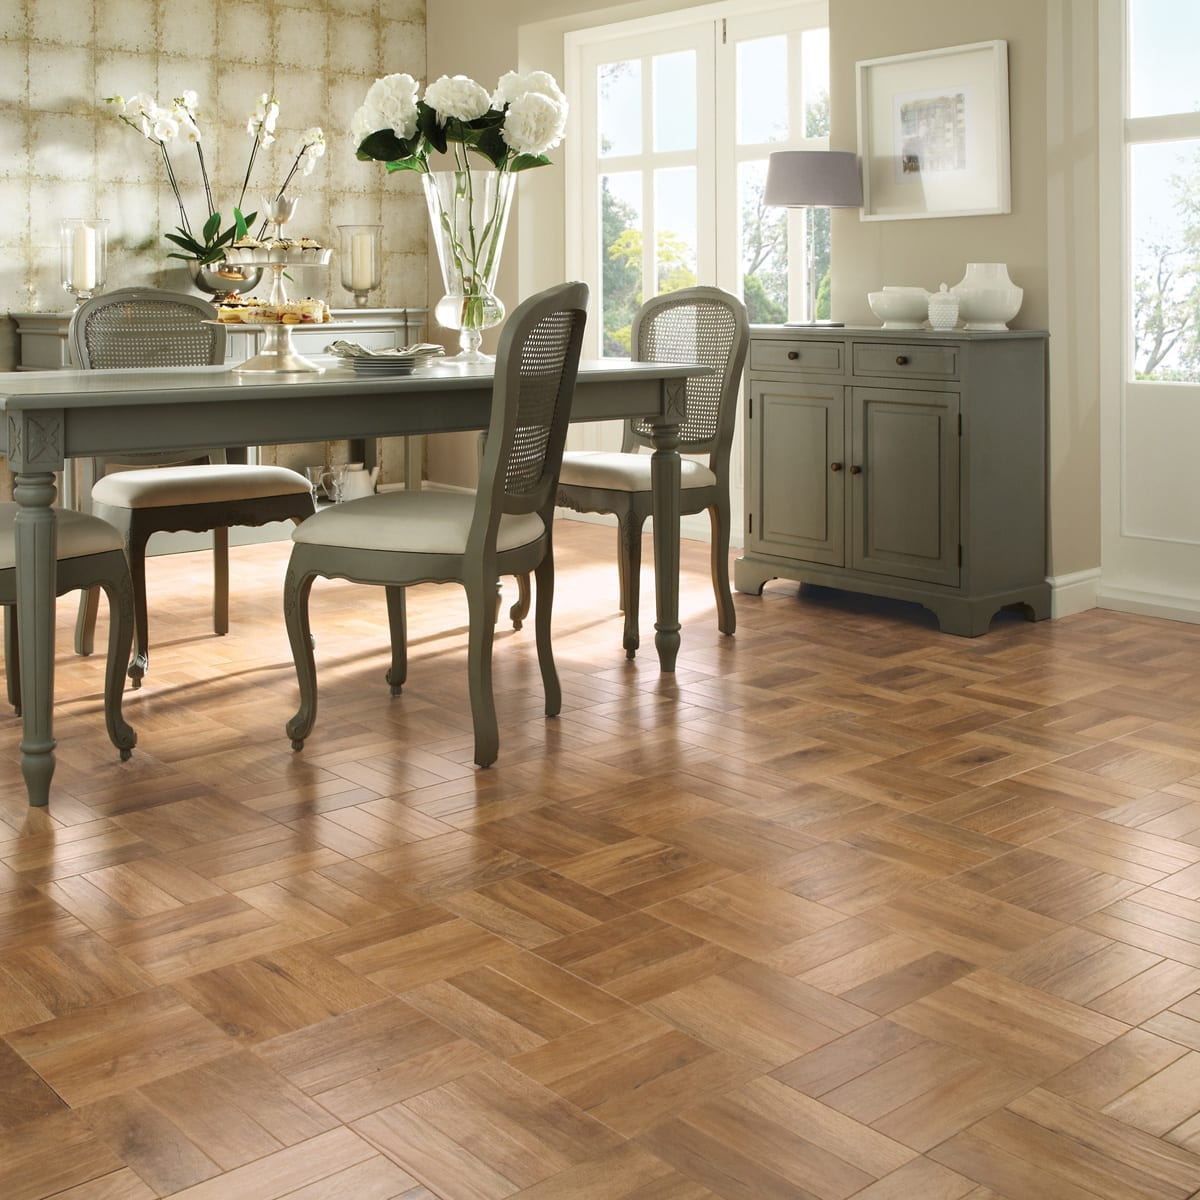 floor vinyl looks that adura plank luxury wood mannington flooring like